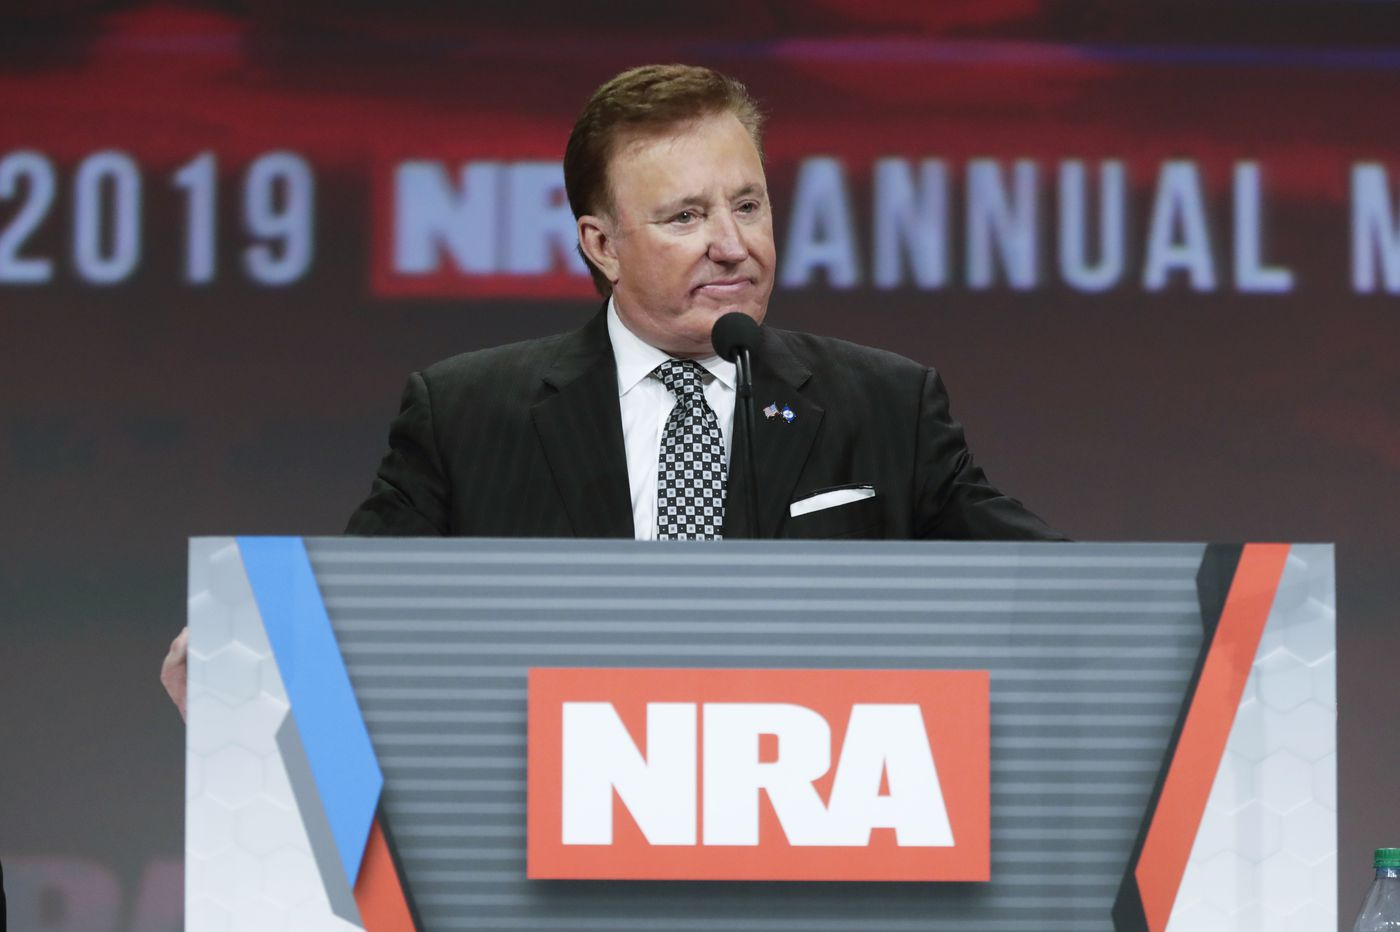 NASCAR team owner Richard Childress resigns from NRA, the sixth board member to exit since May